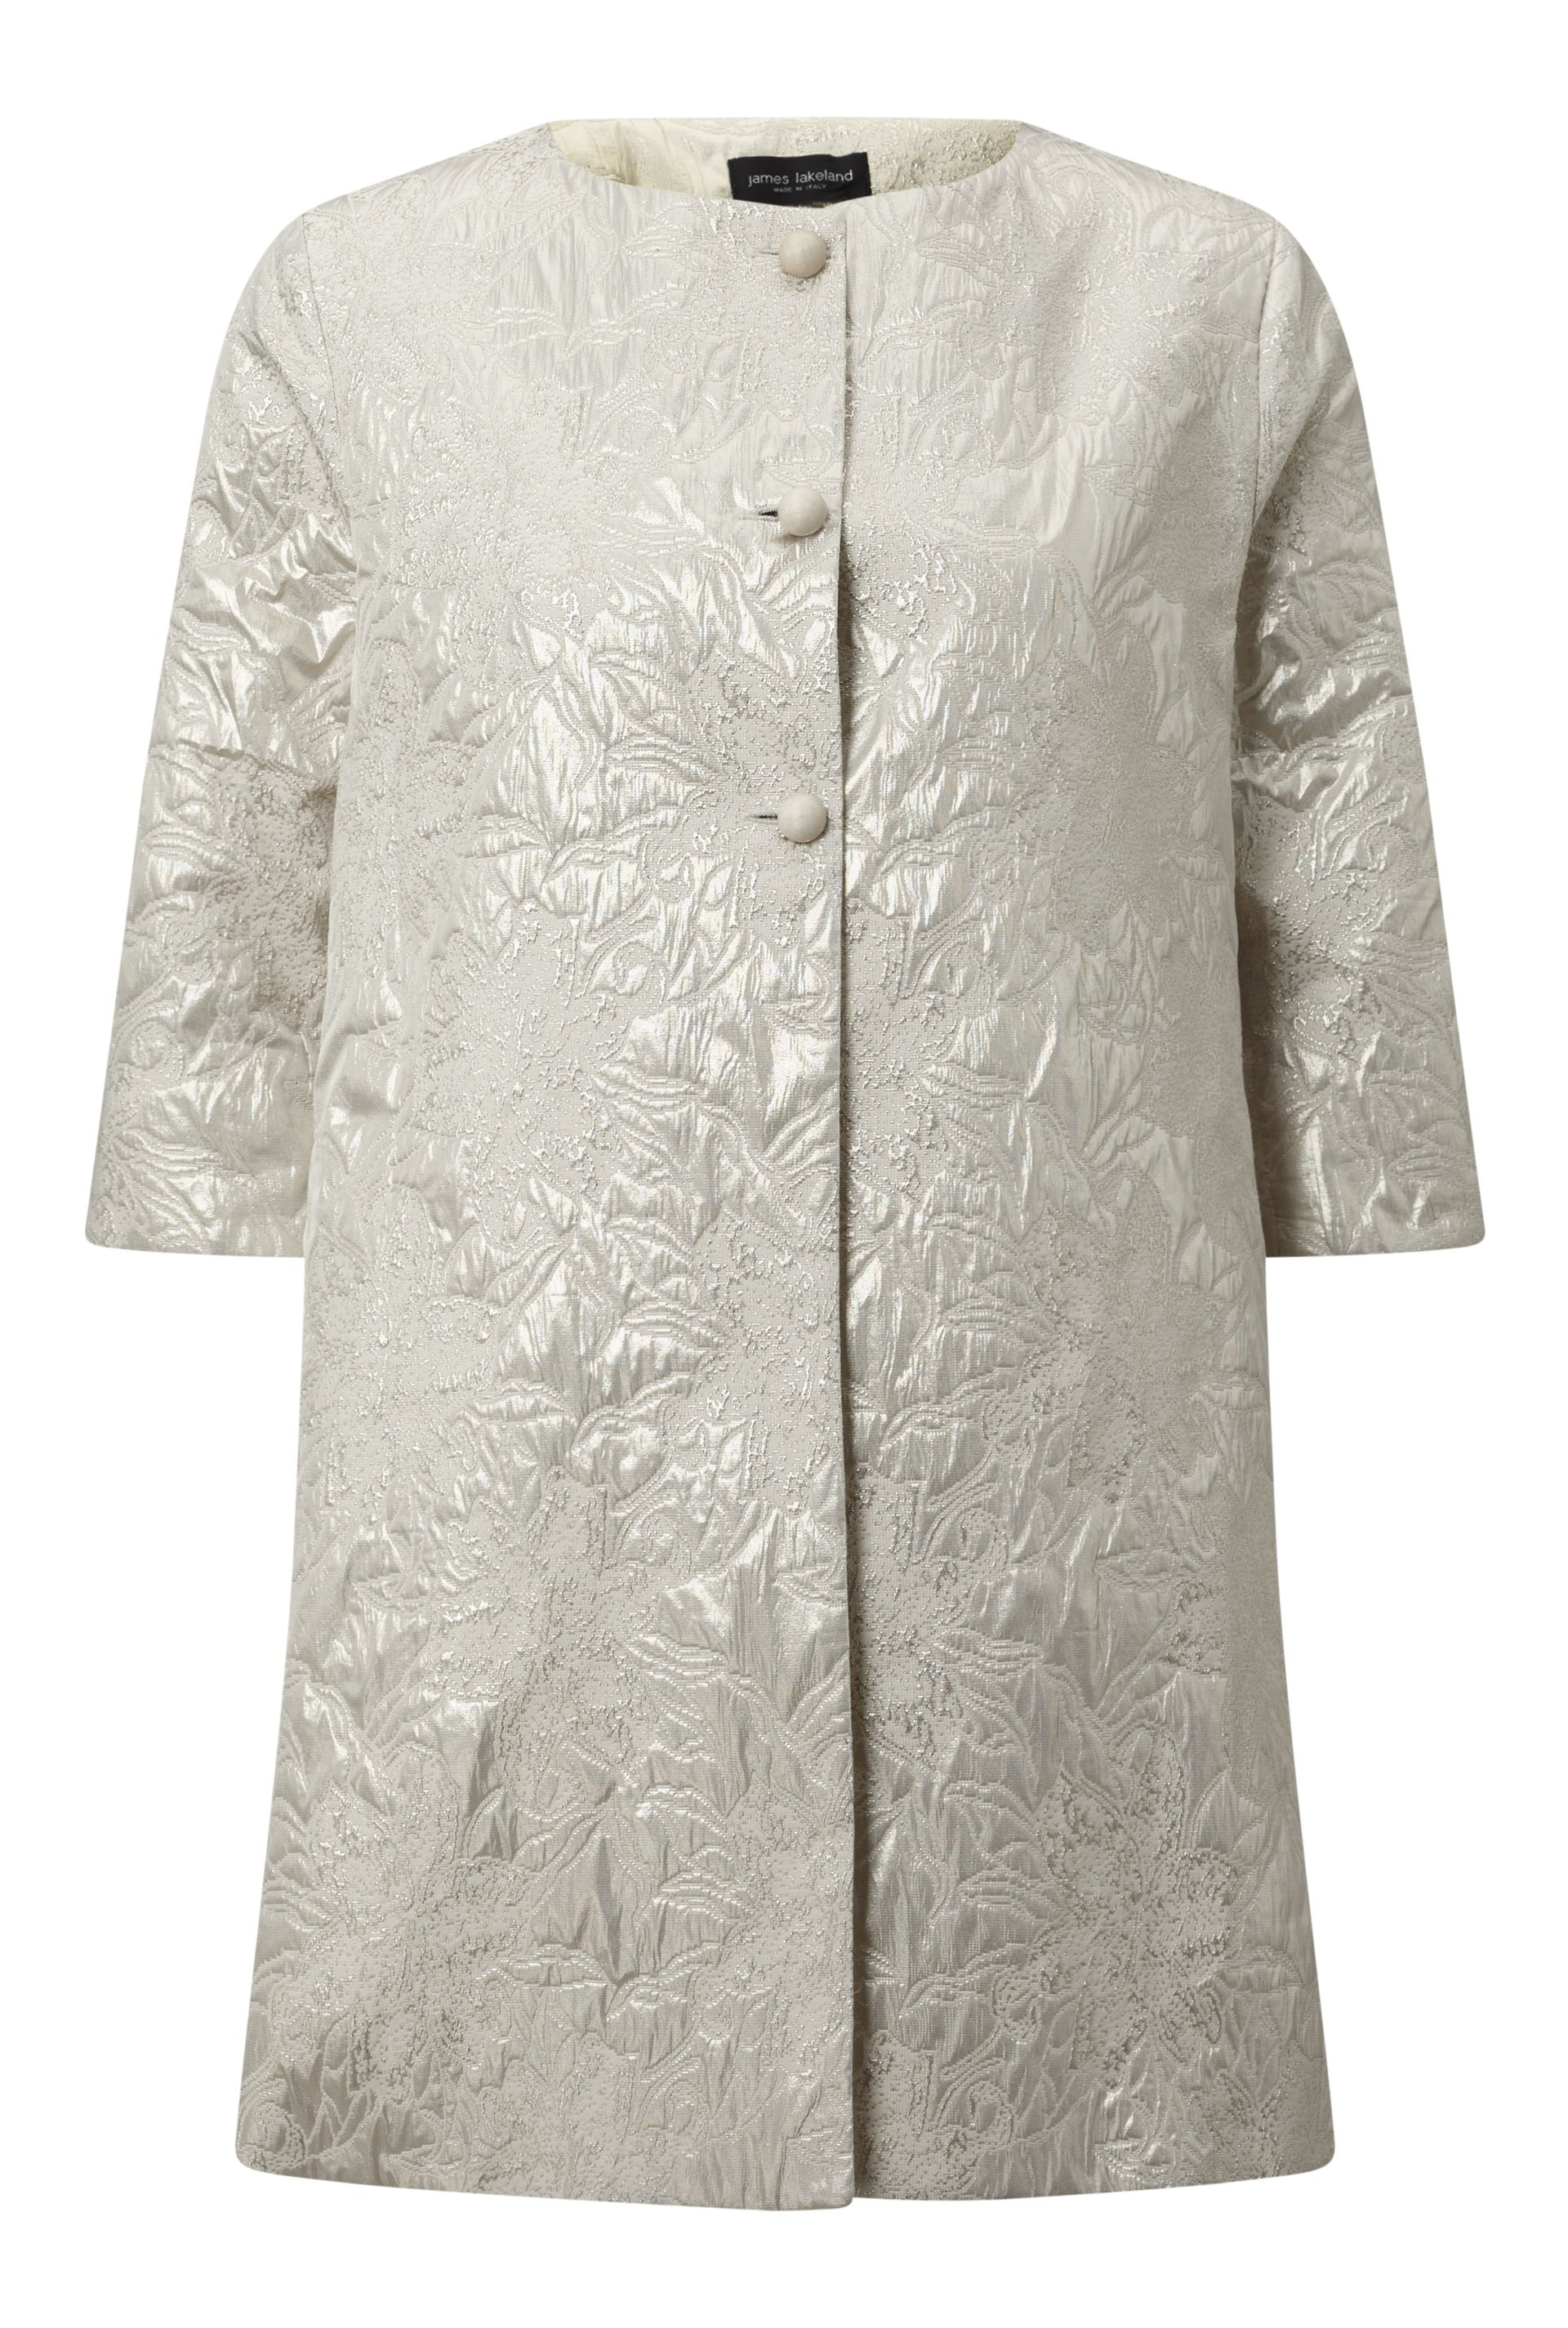 James Lakeland Shimmer Jacquard Jacket, White